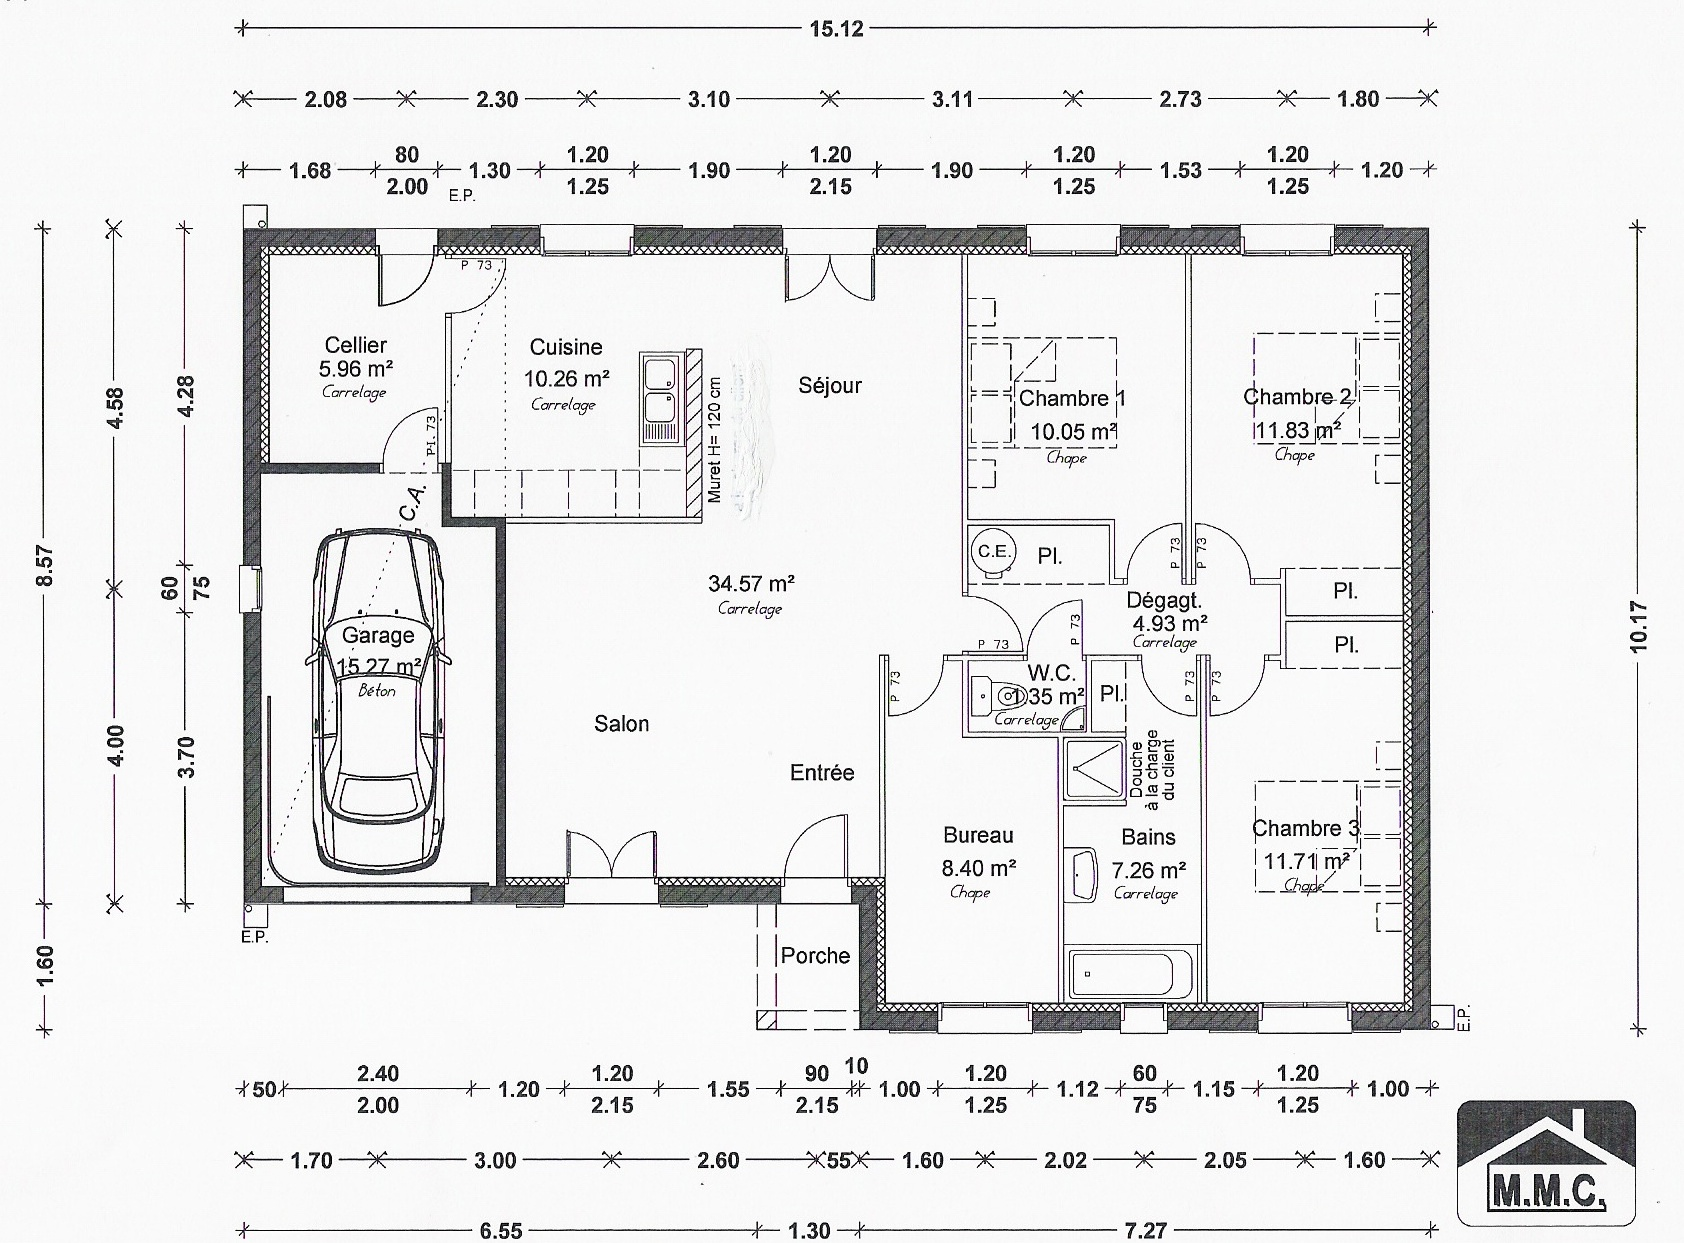 Plan de maison simple maison moderne for Maison moderne simple